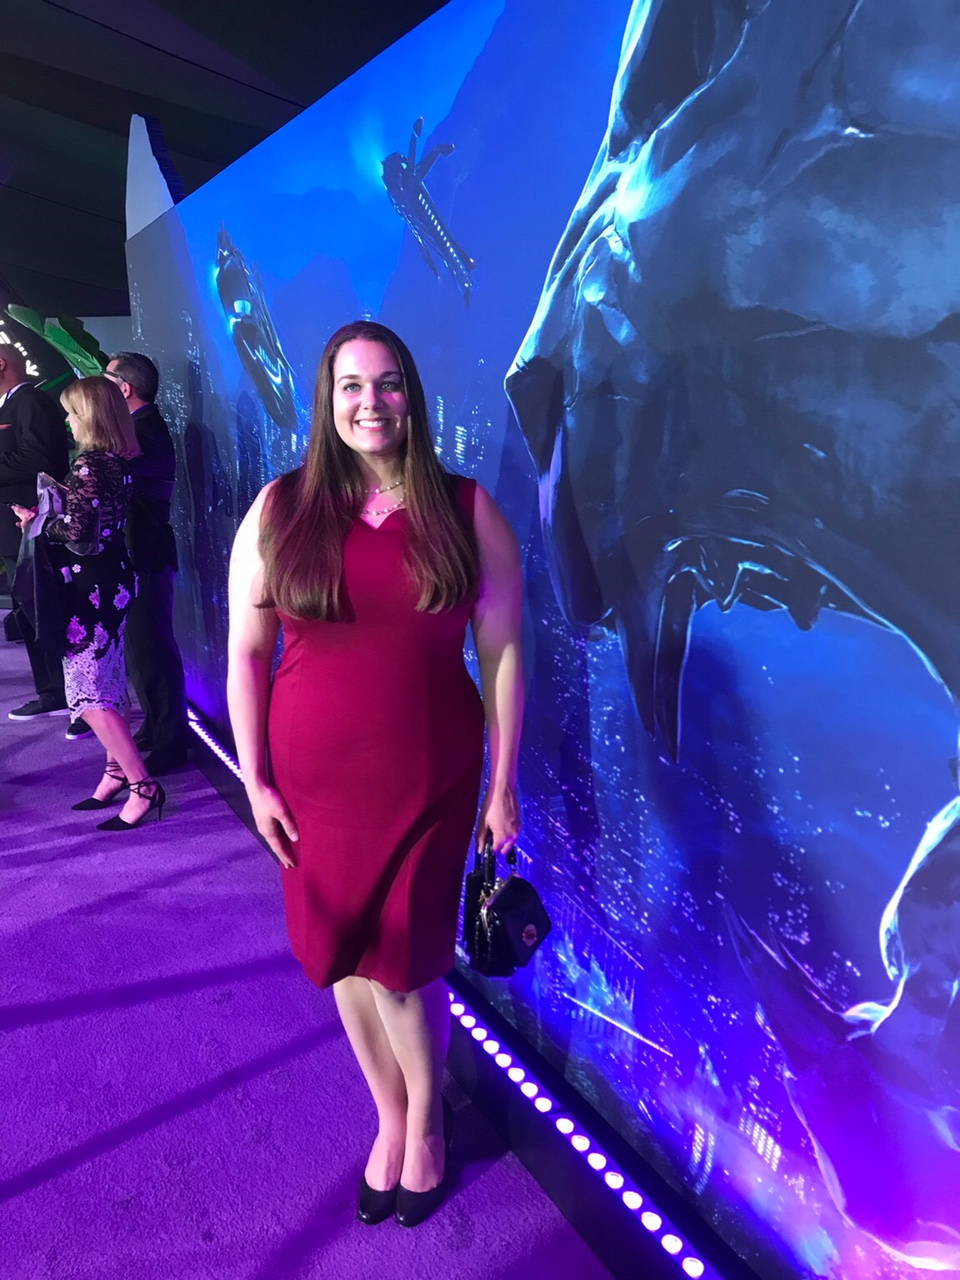 Black Panther World Premiere, The Black Panther Movie Premiere, What's it like attending a Marvel movie premiere, The Black Panther Review